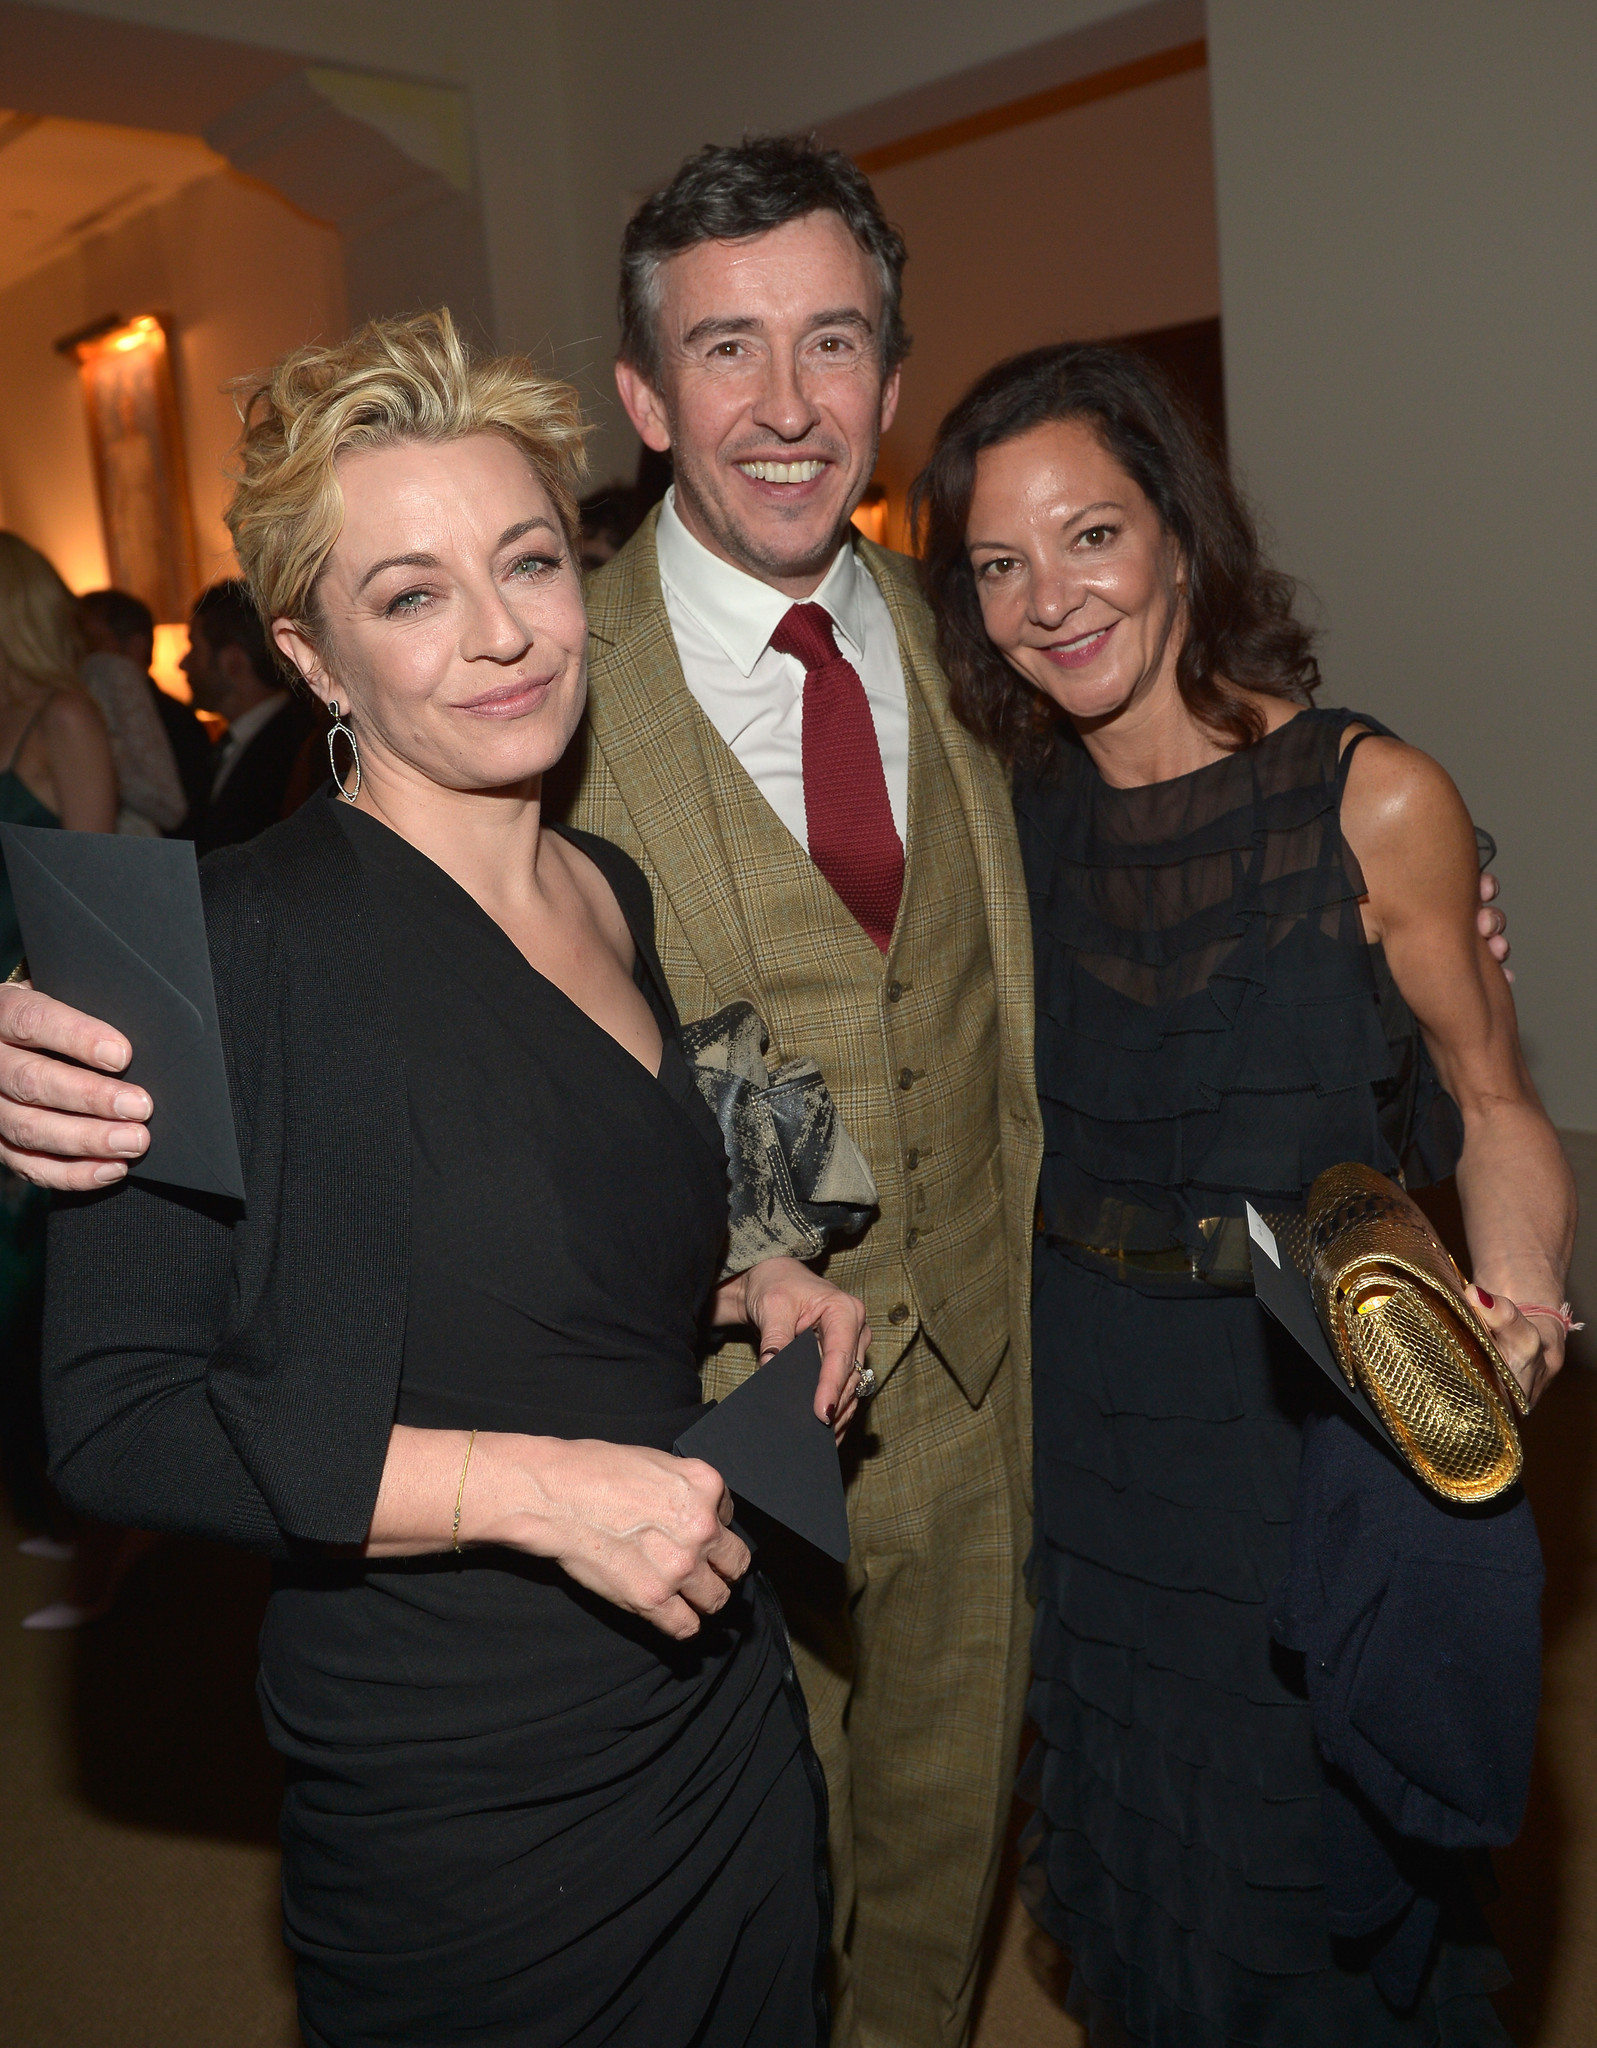 2014 The Weinstein Company's Academy Award party photos: Tracey Seward